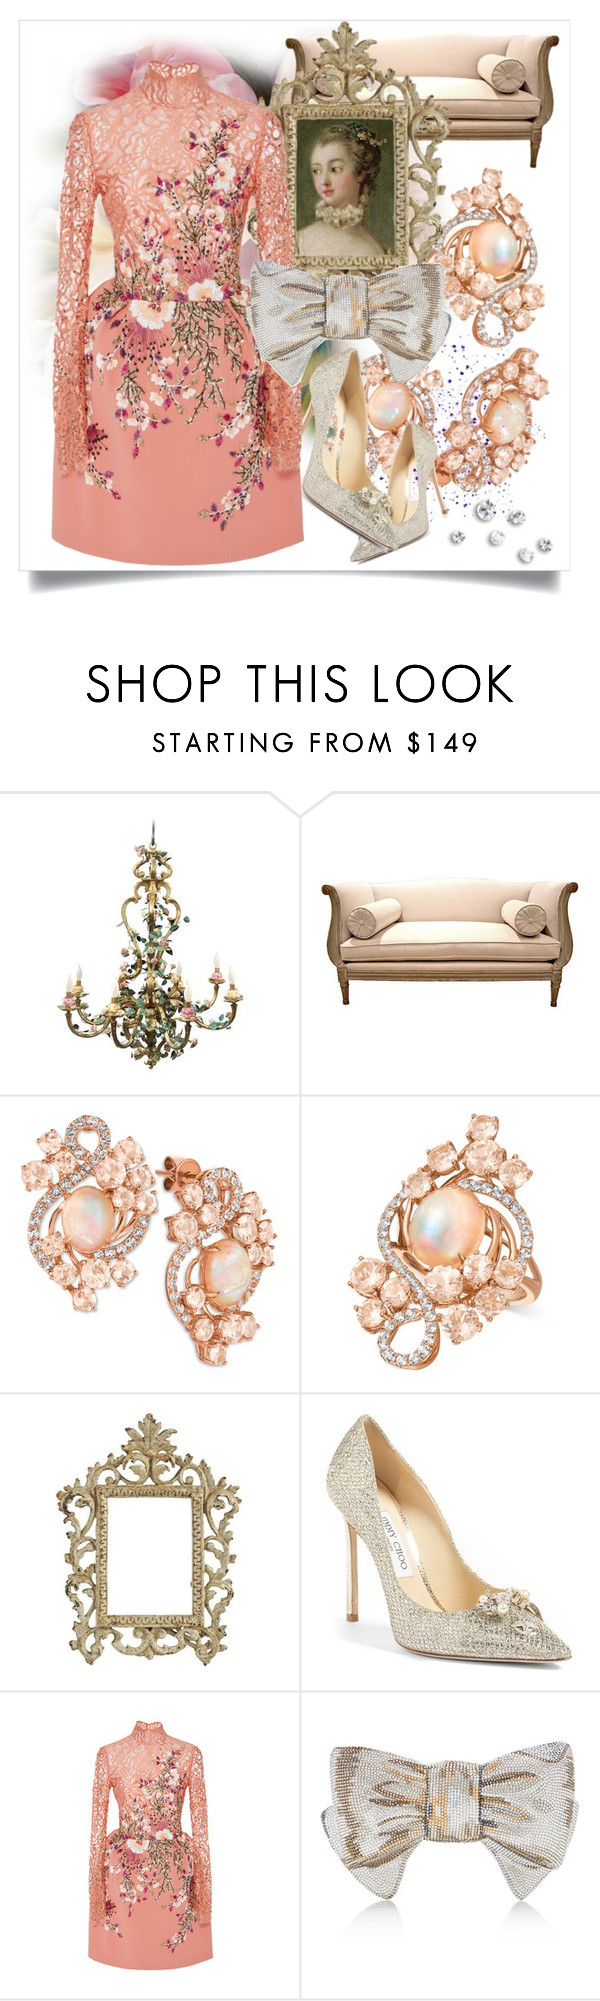 """""""Rococo Inspired"""" by capricat ❤ liked on Polyvore featuring LE VIAN, Jimmy Choo, Georges Hobeika and Judith Leiber"""